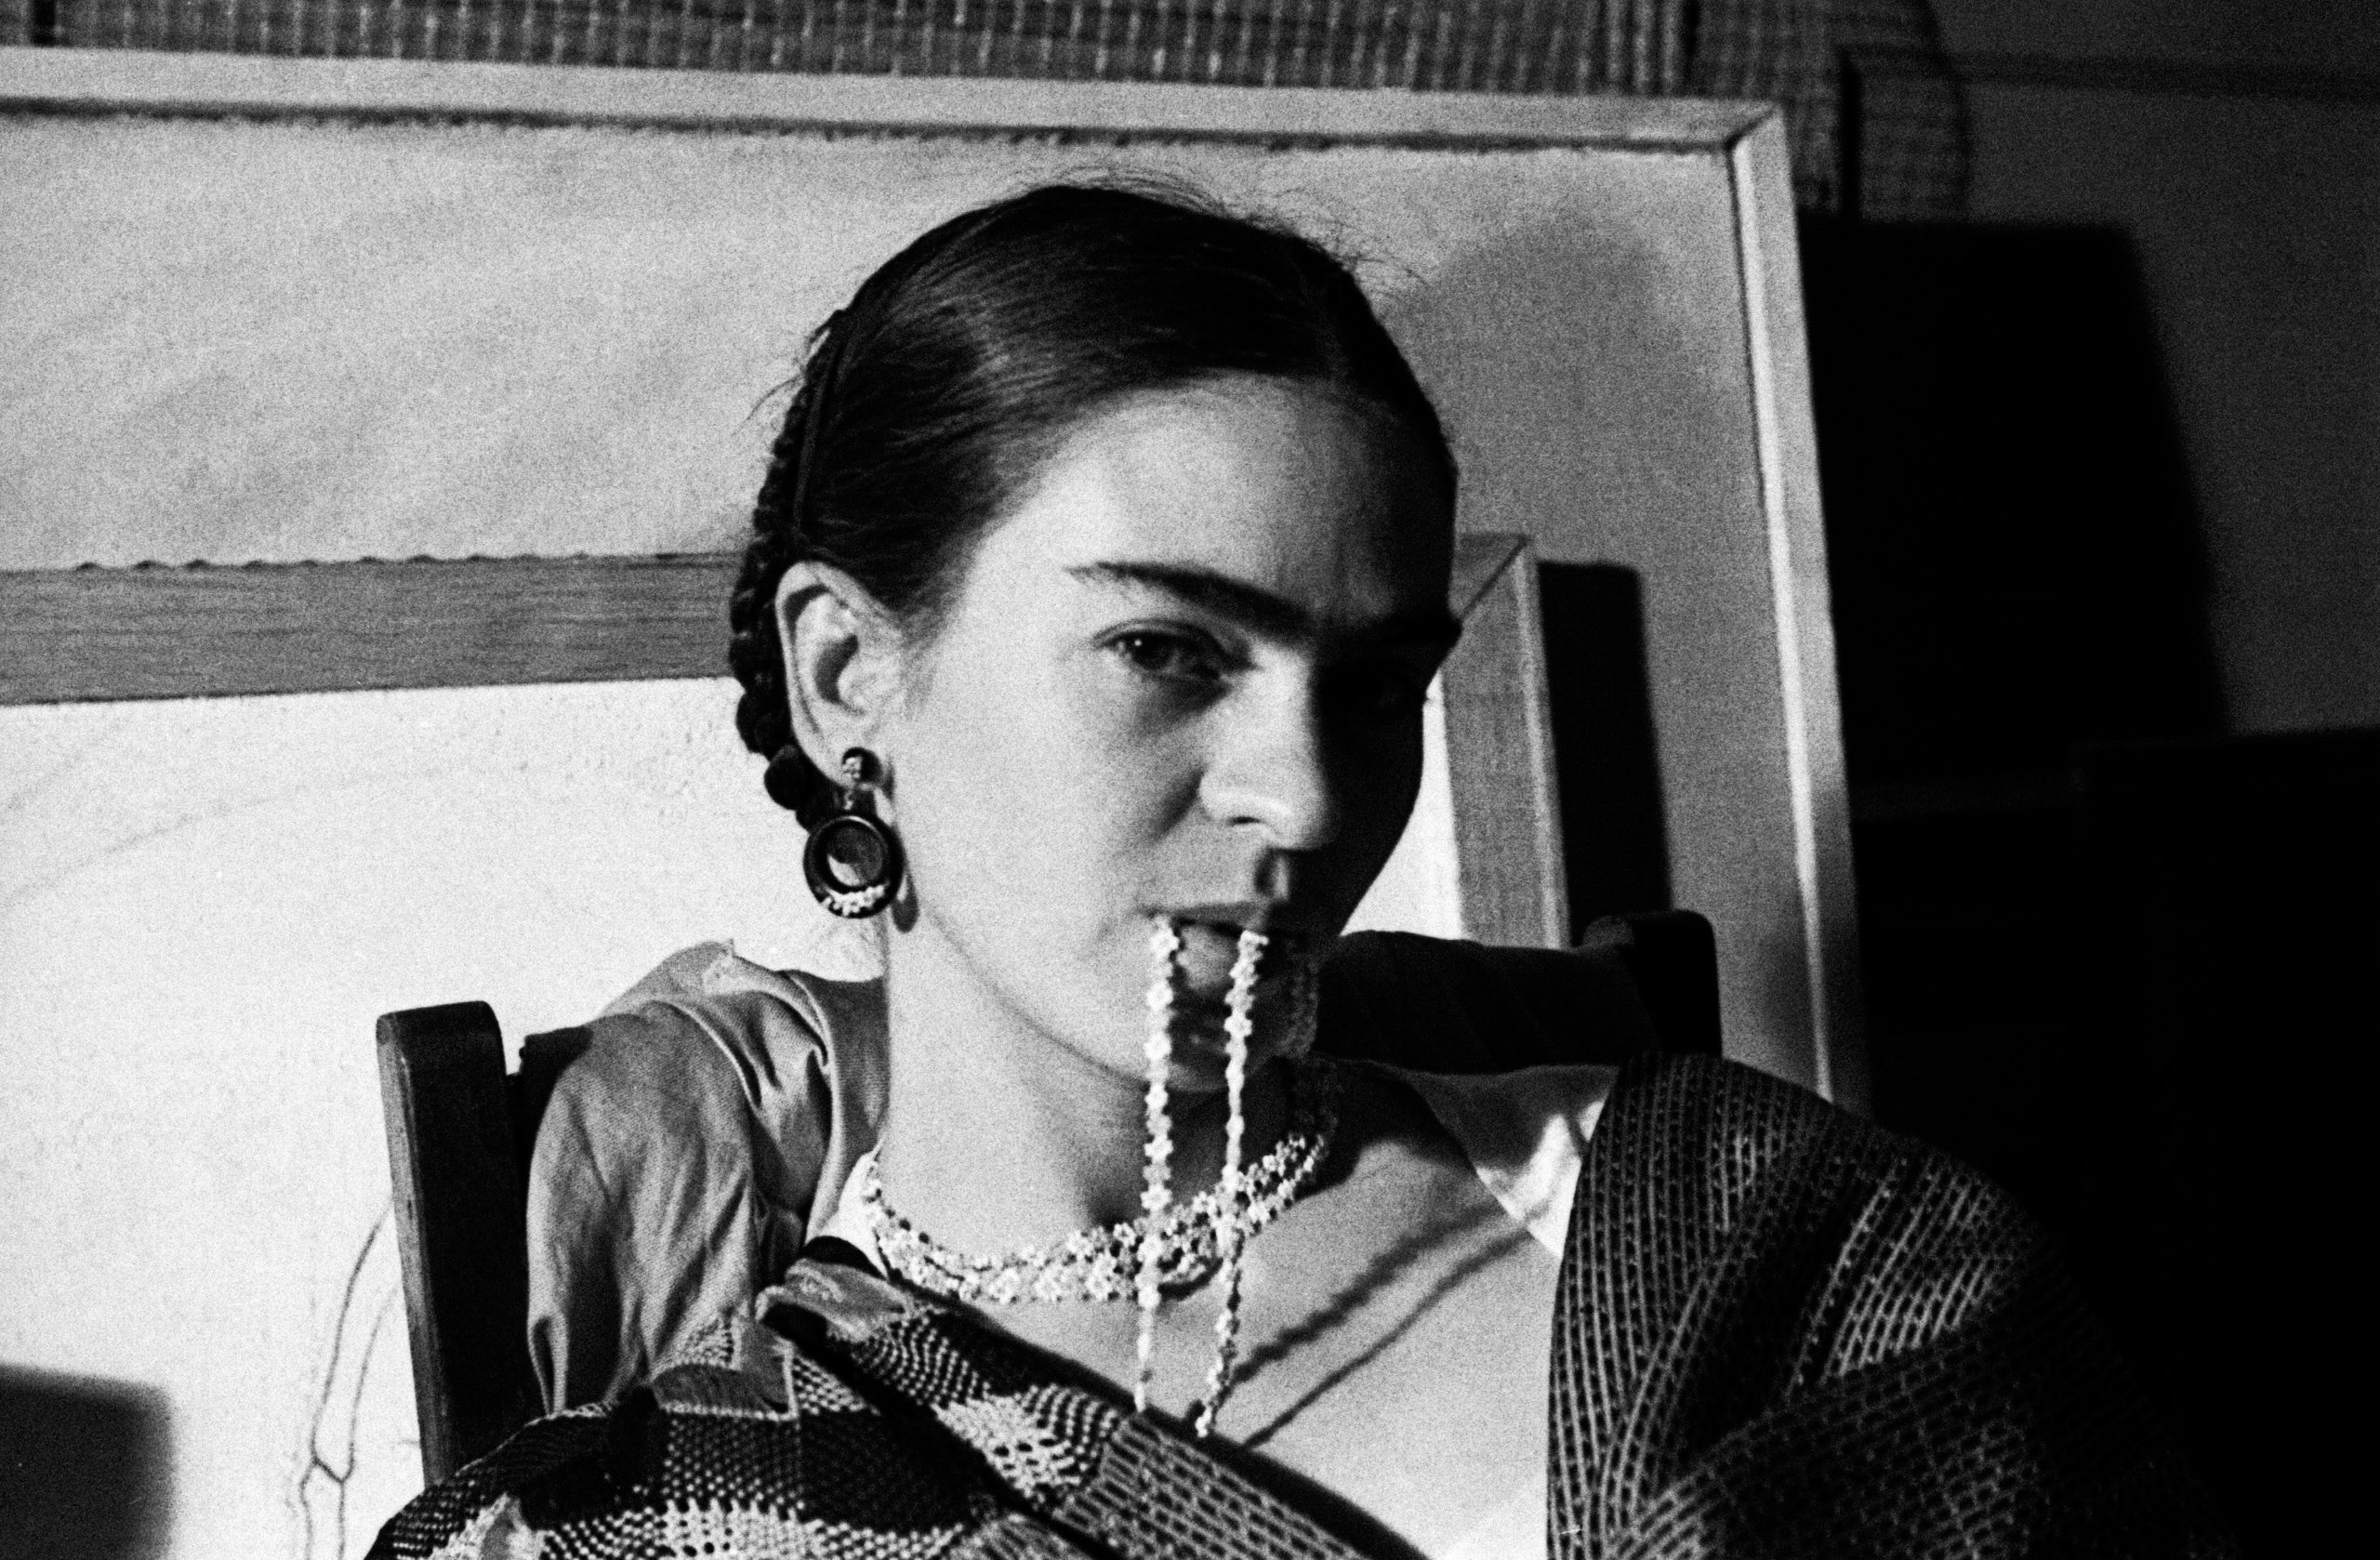 Frida Biting her Necklace, New Workers School, NYC, 1933 (©LUCIENNE BLOCH, COURTESY GALERIE DE L'INSTANT, PARIS)